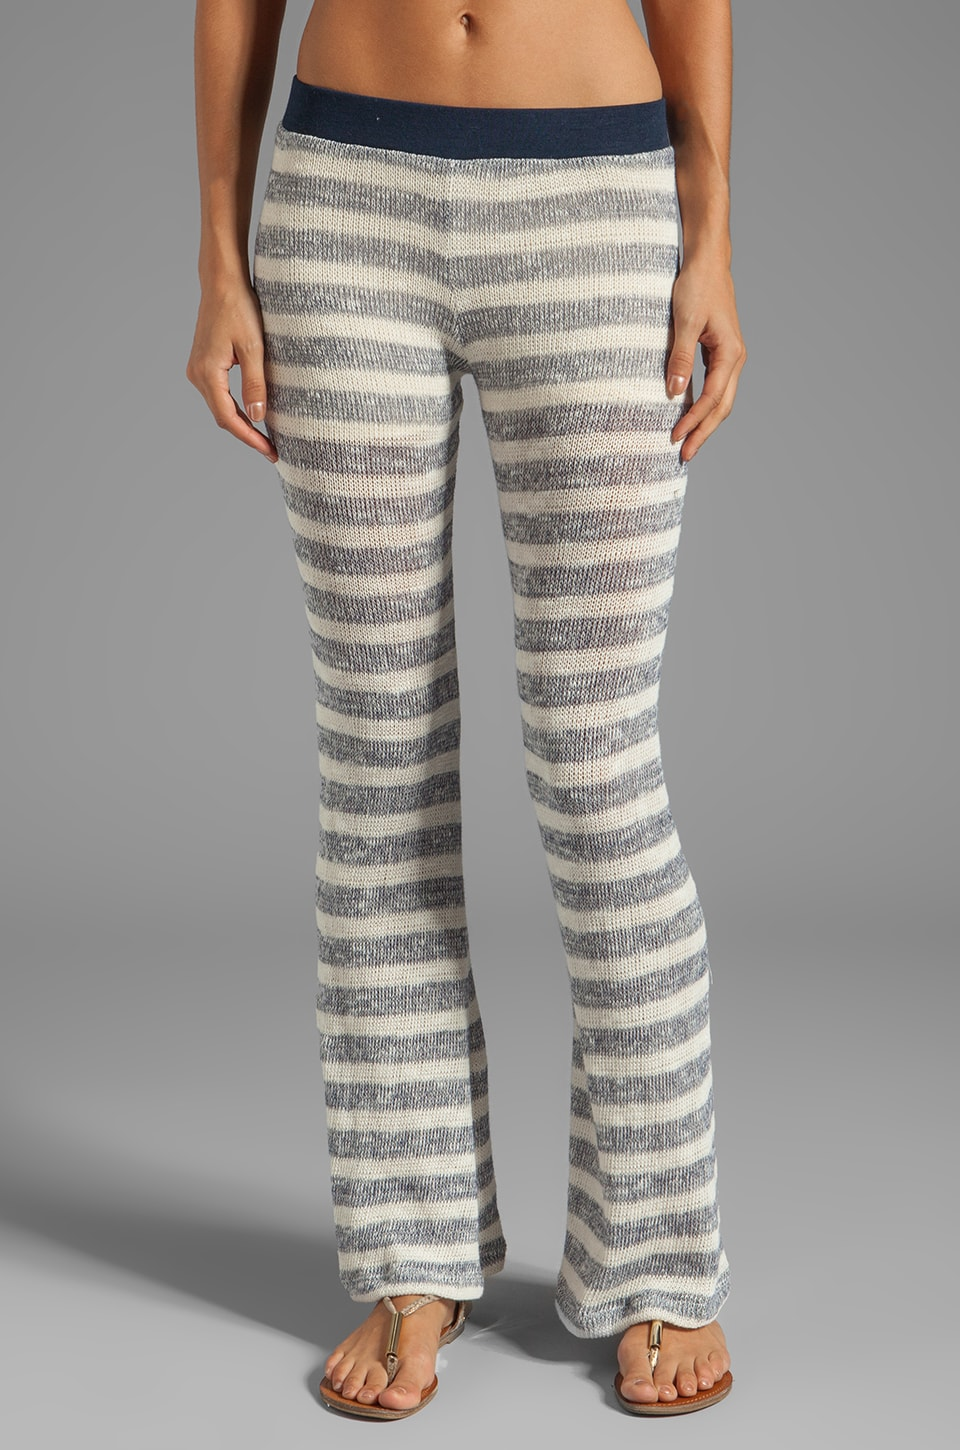 WOODLEIGH Jaquelin Pants in Indigo Stripe